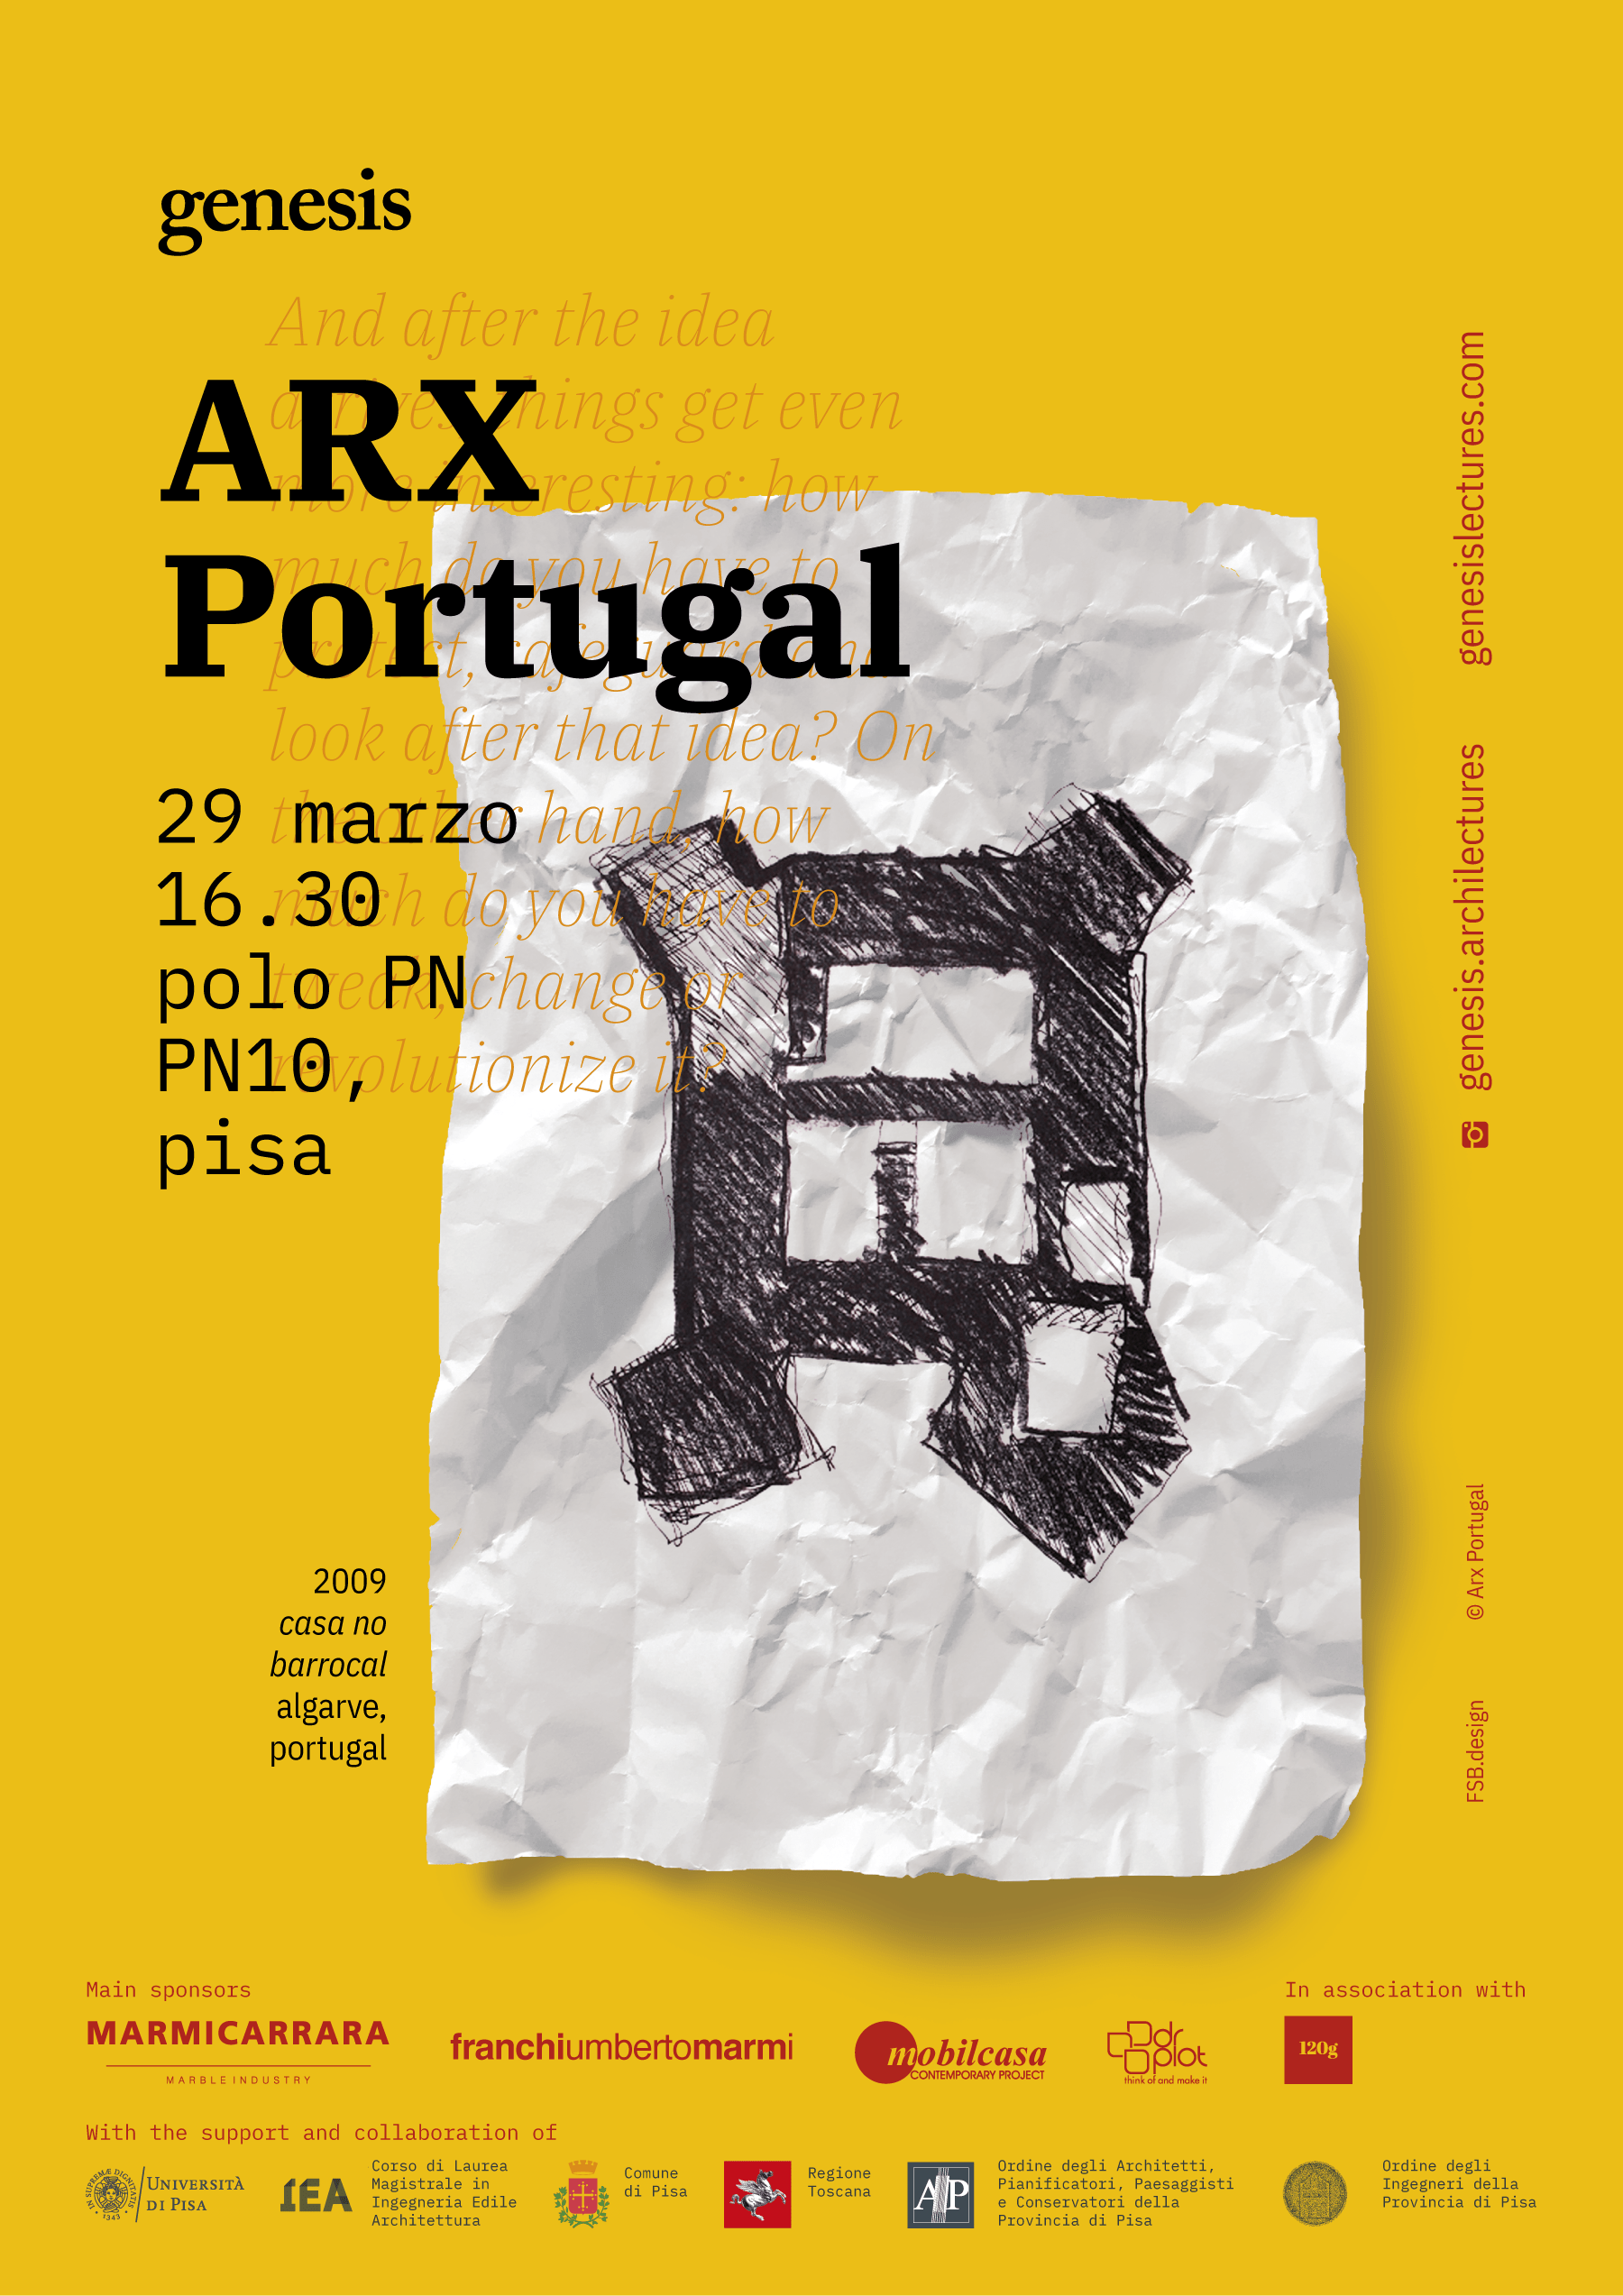 ARX Portugal at Genesis Lectures 2019